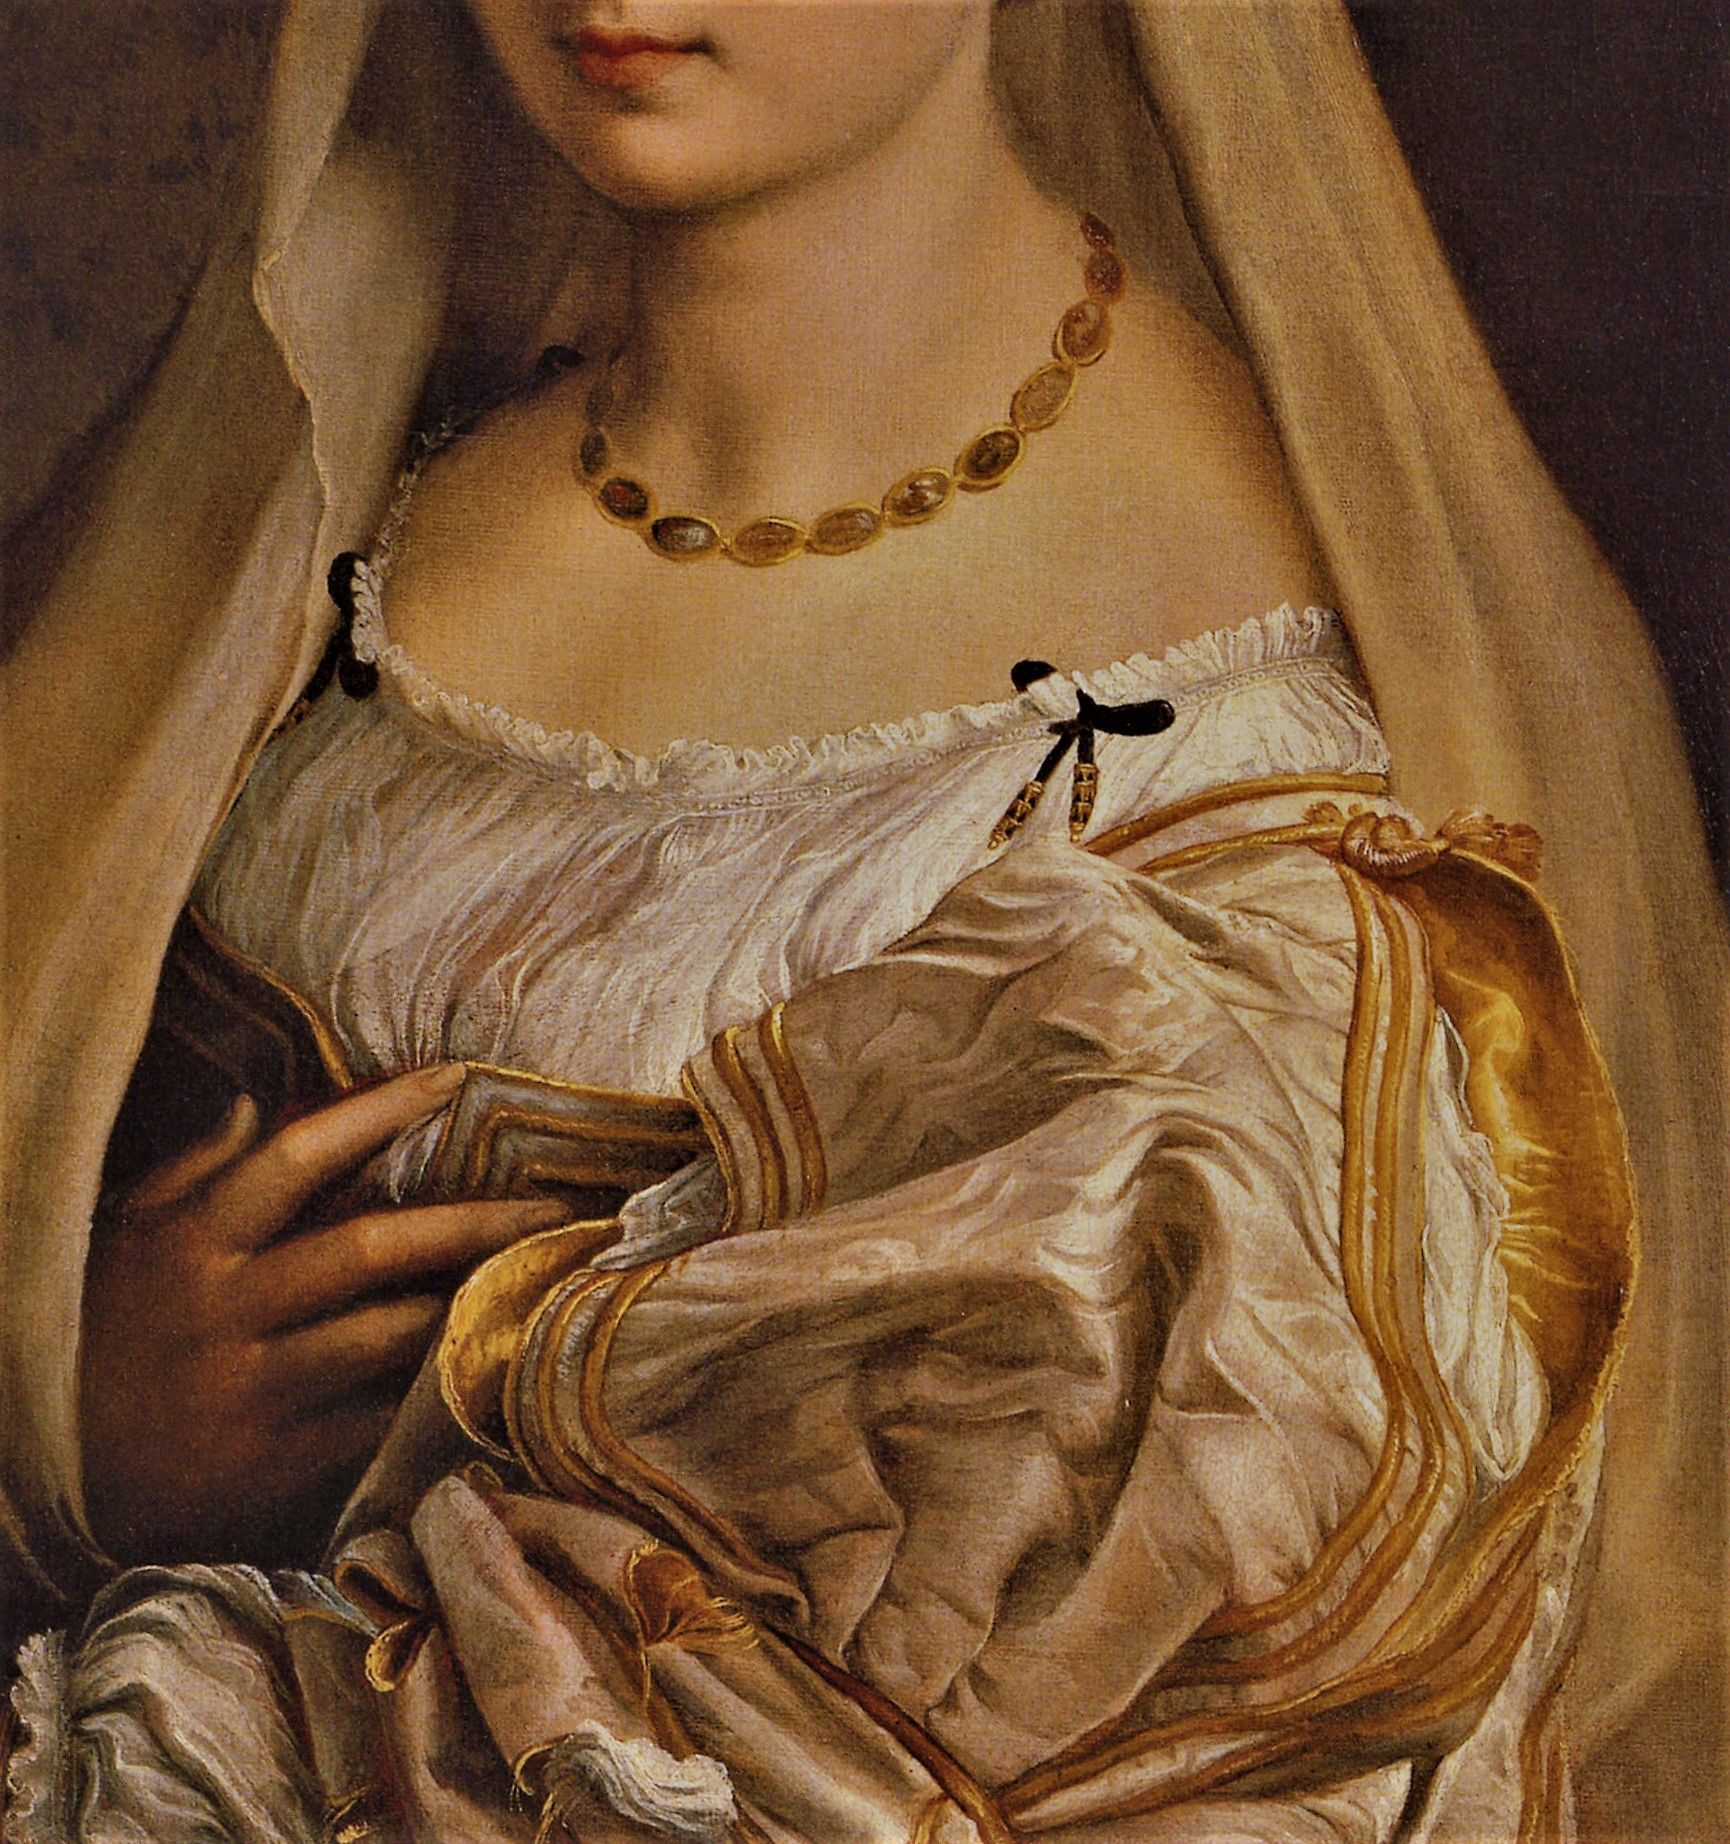 Portrait of a Woman with a Veil by Raphael